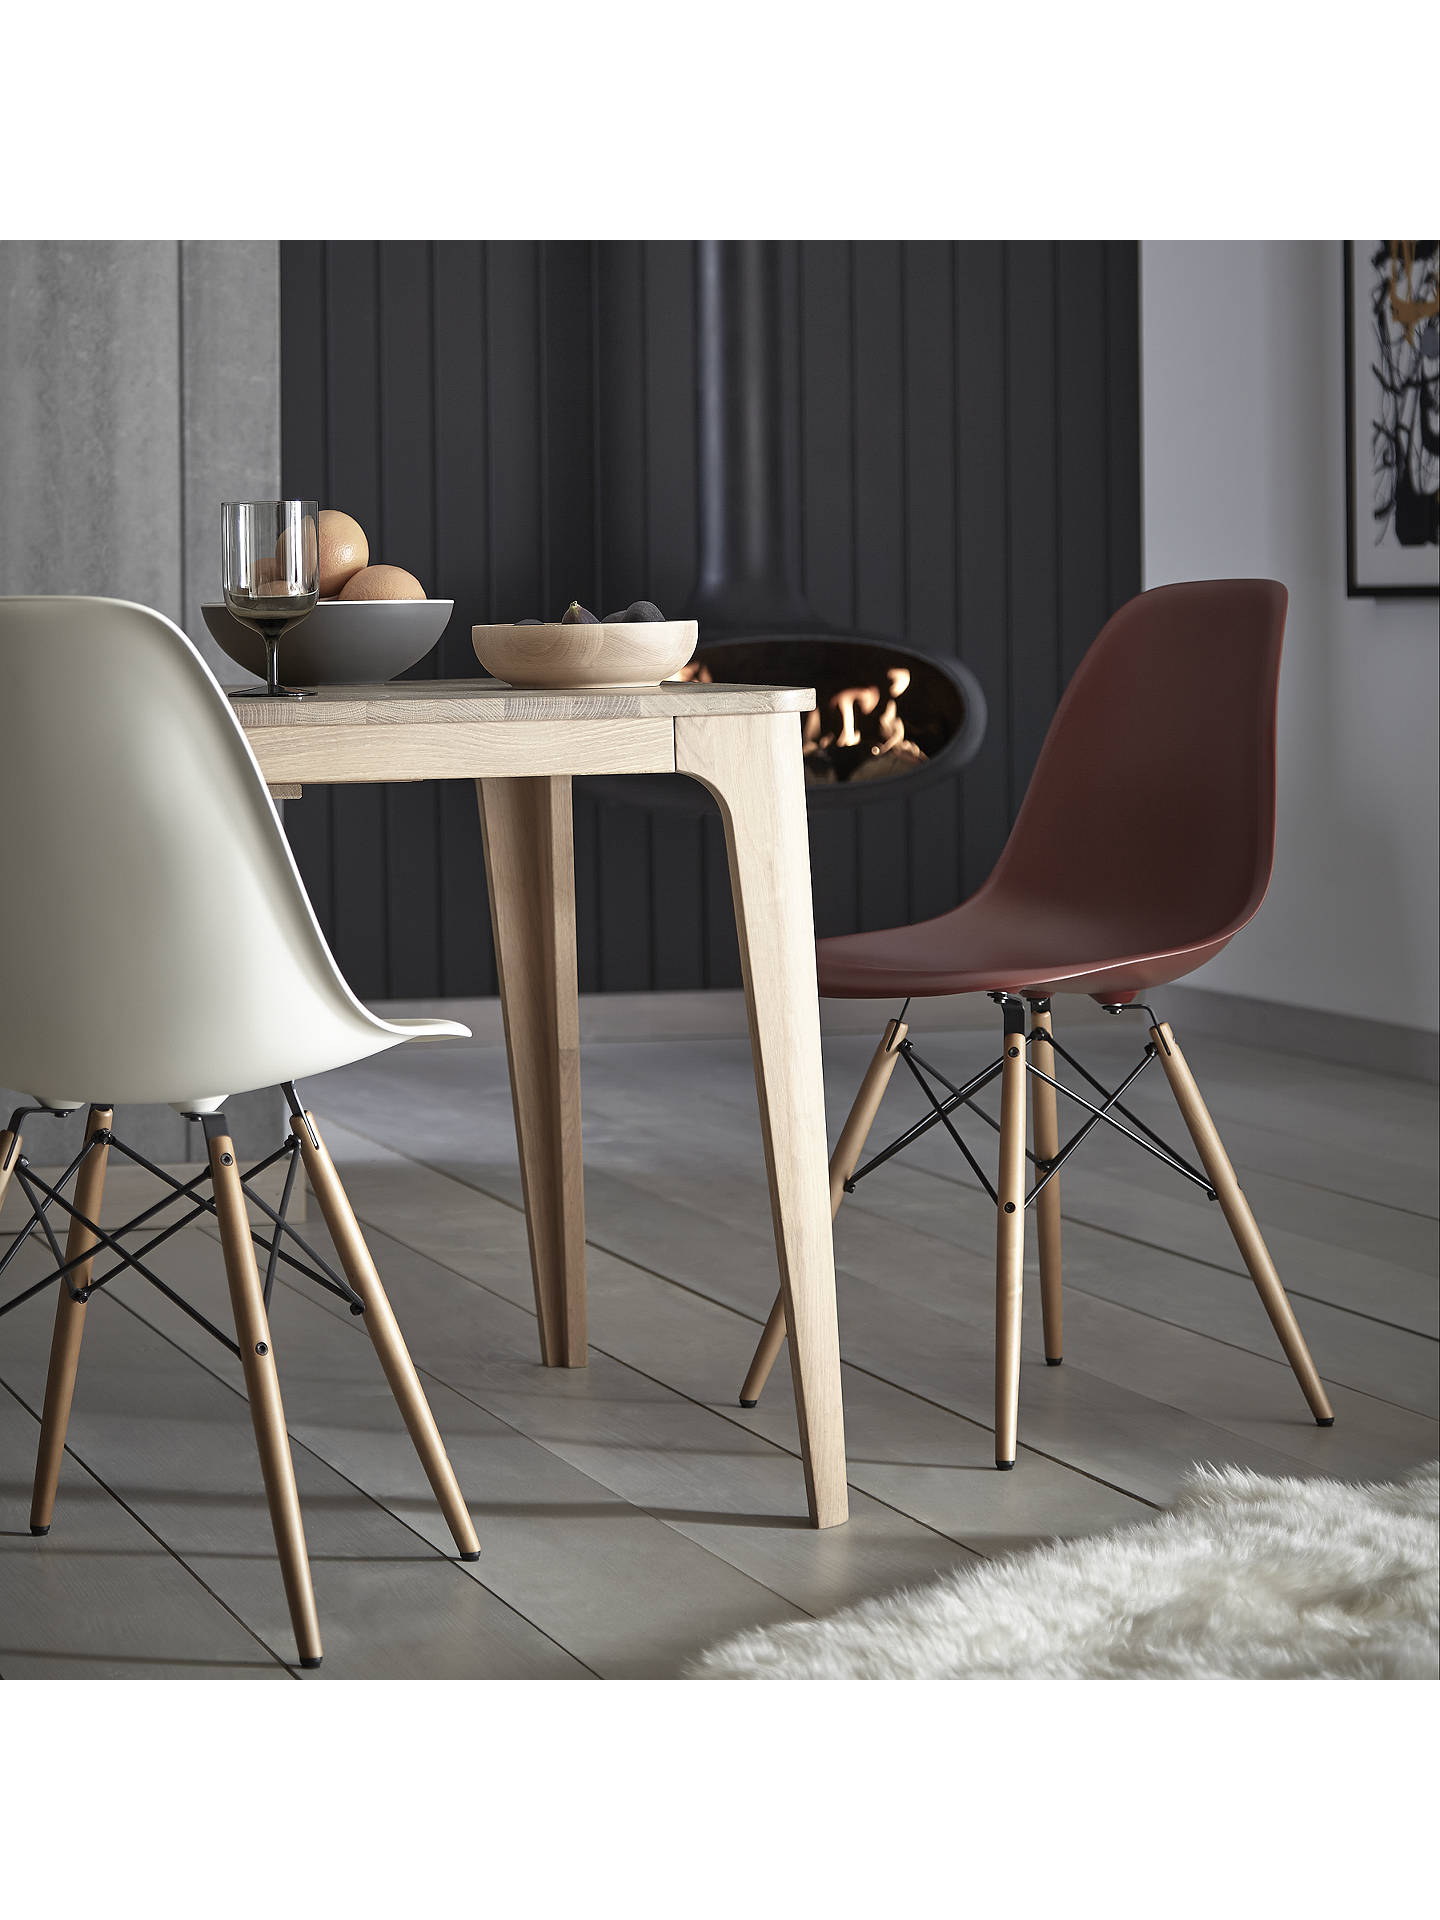 BuyVitra Eames DSW Side Chair, Light Maple Leg, Cream Online at johnlewis.com